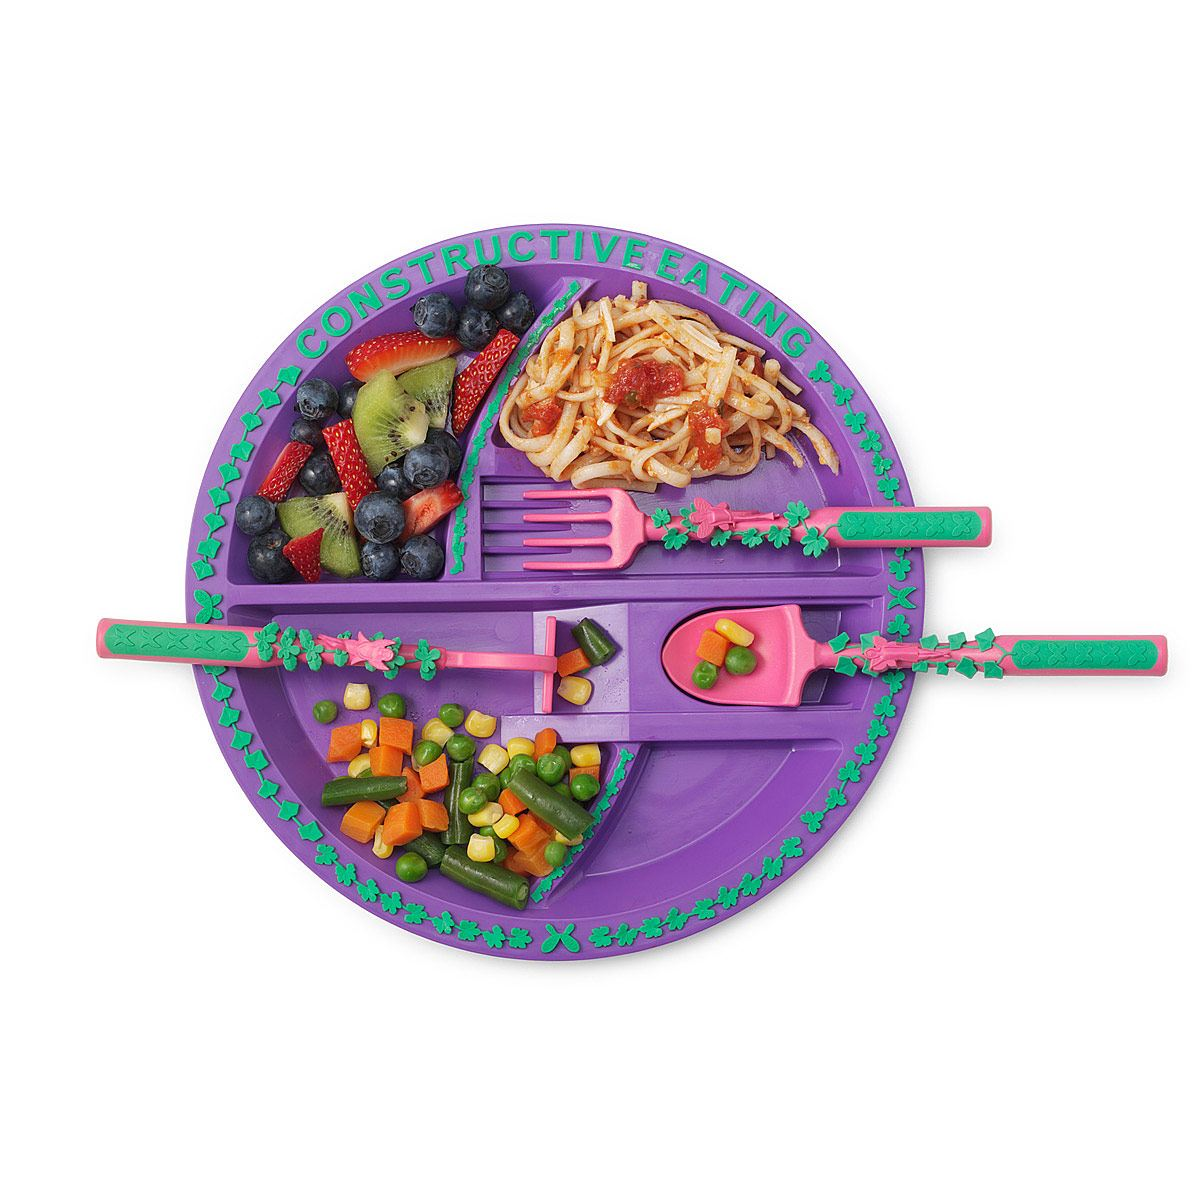 Garden Fairy Plate - Constructive Eating